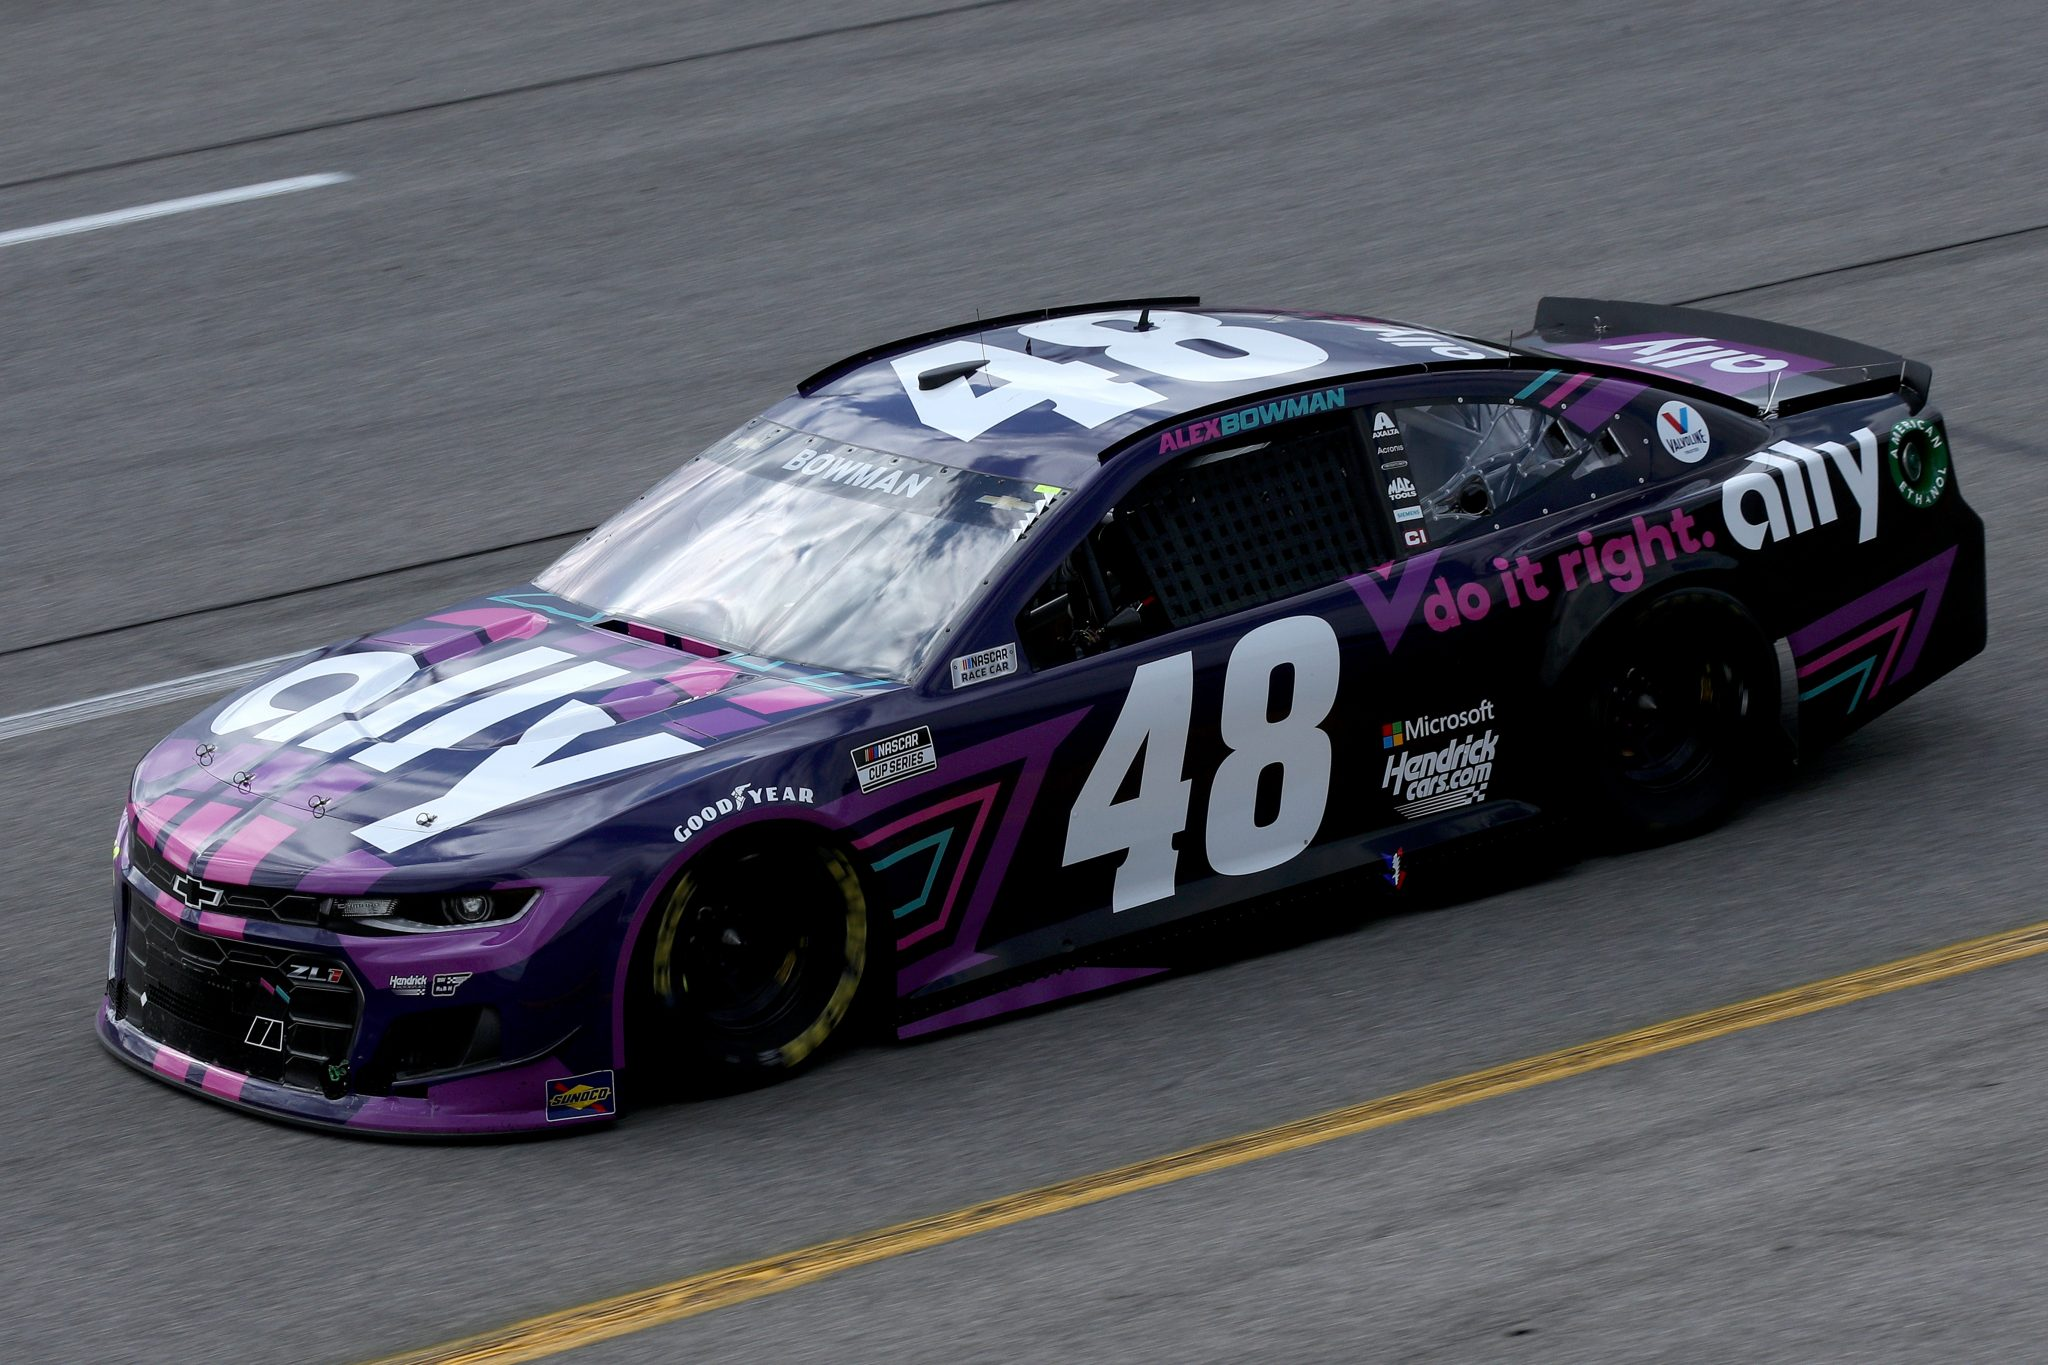 RICHMOND, VIRGINIA - APRIL 18: Alex Bowman, driver of the #48 Ally Chevrolet, drives during the NASCAR Cup Series Toyota Owners 400 at Richmond Raceway on April 18, 2021 in Richmond, Virginia. (Photo by Sean Gardner/Getty Images) | Getty Images